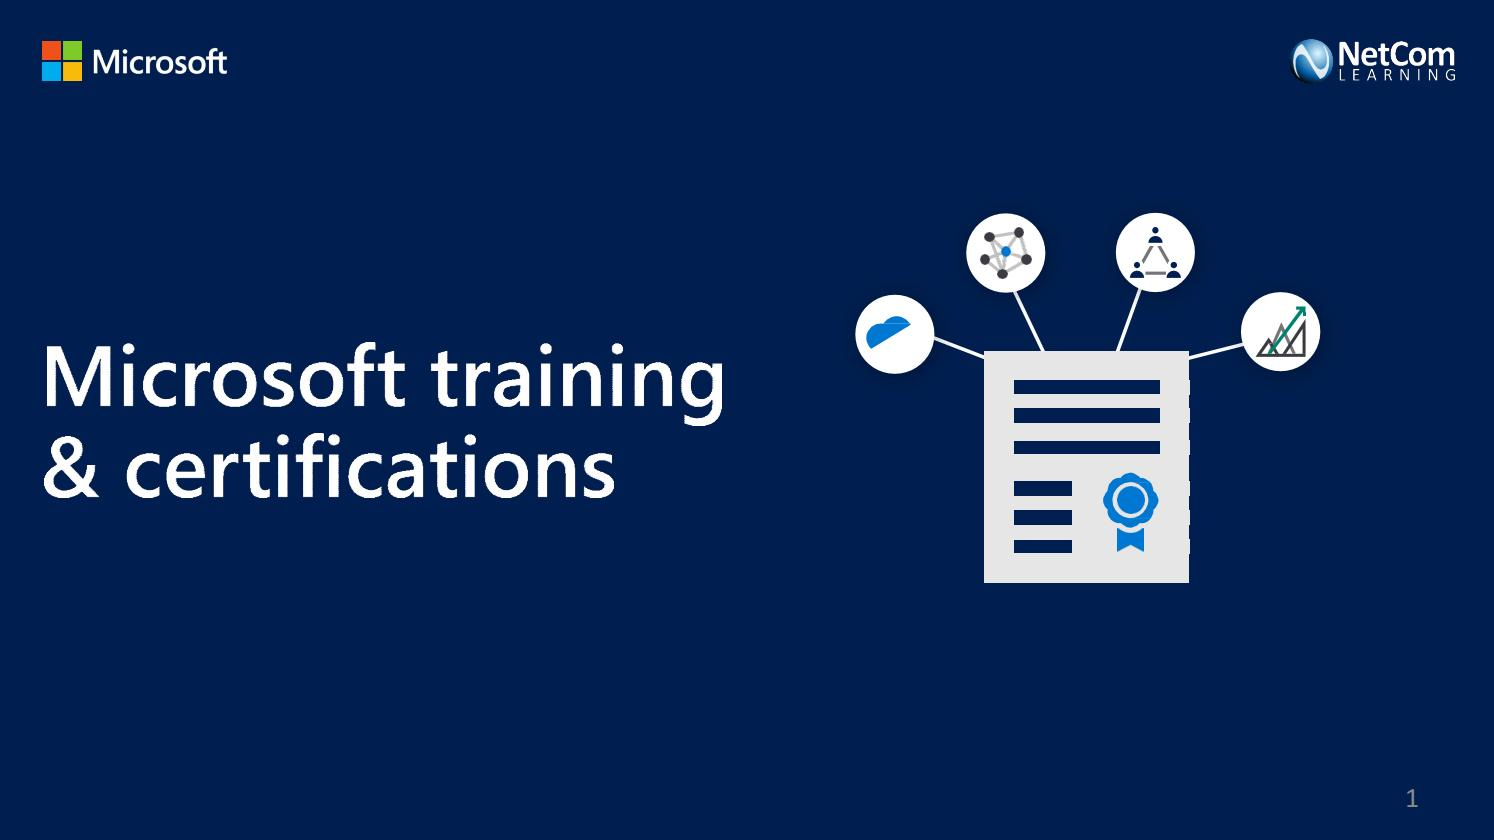 Microsoft Certifications as an educational path towards becoming a software developer